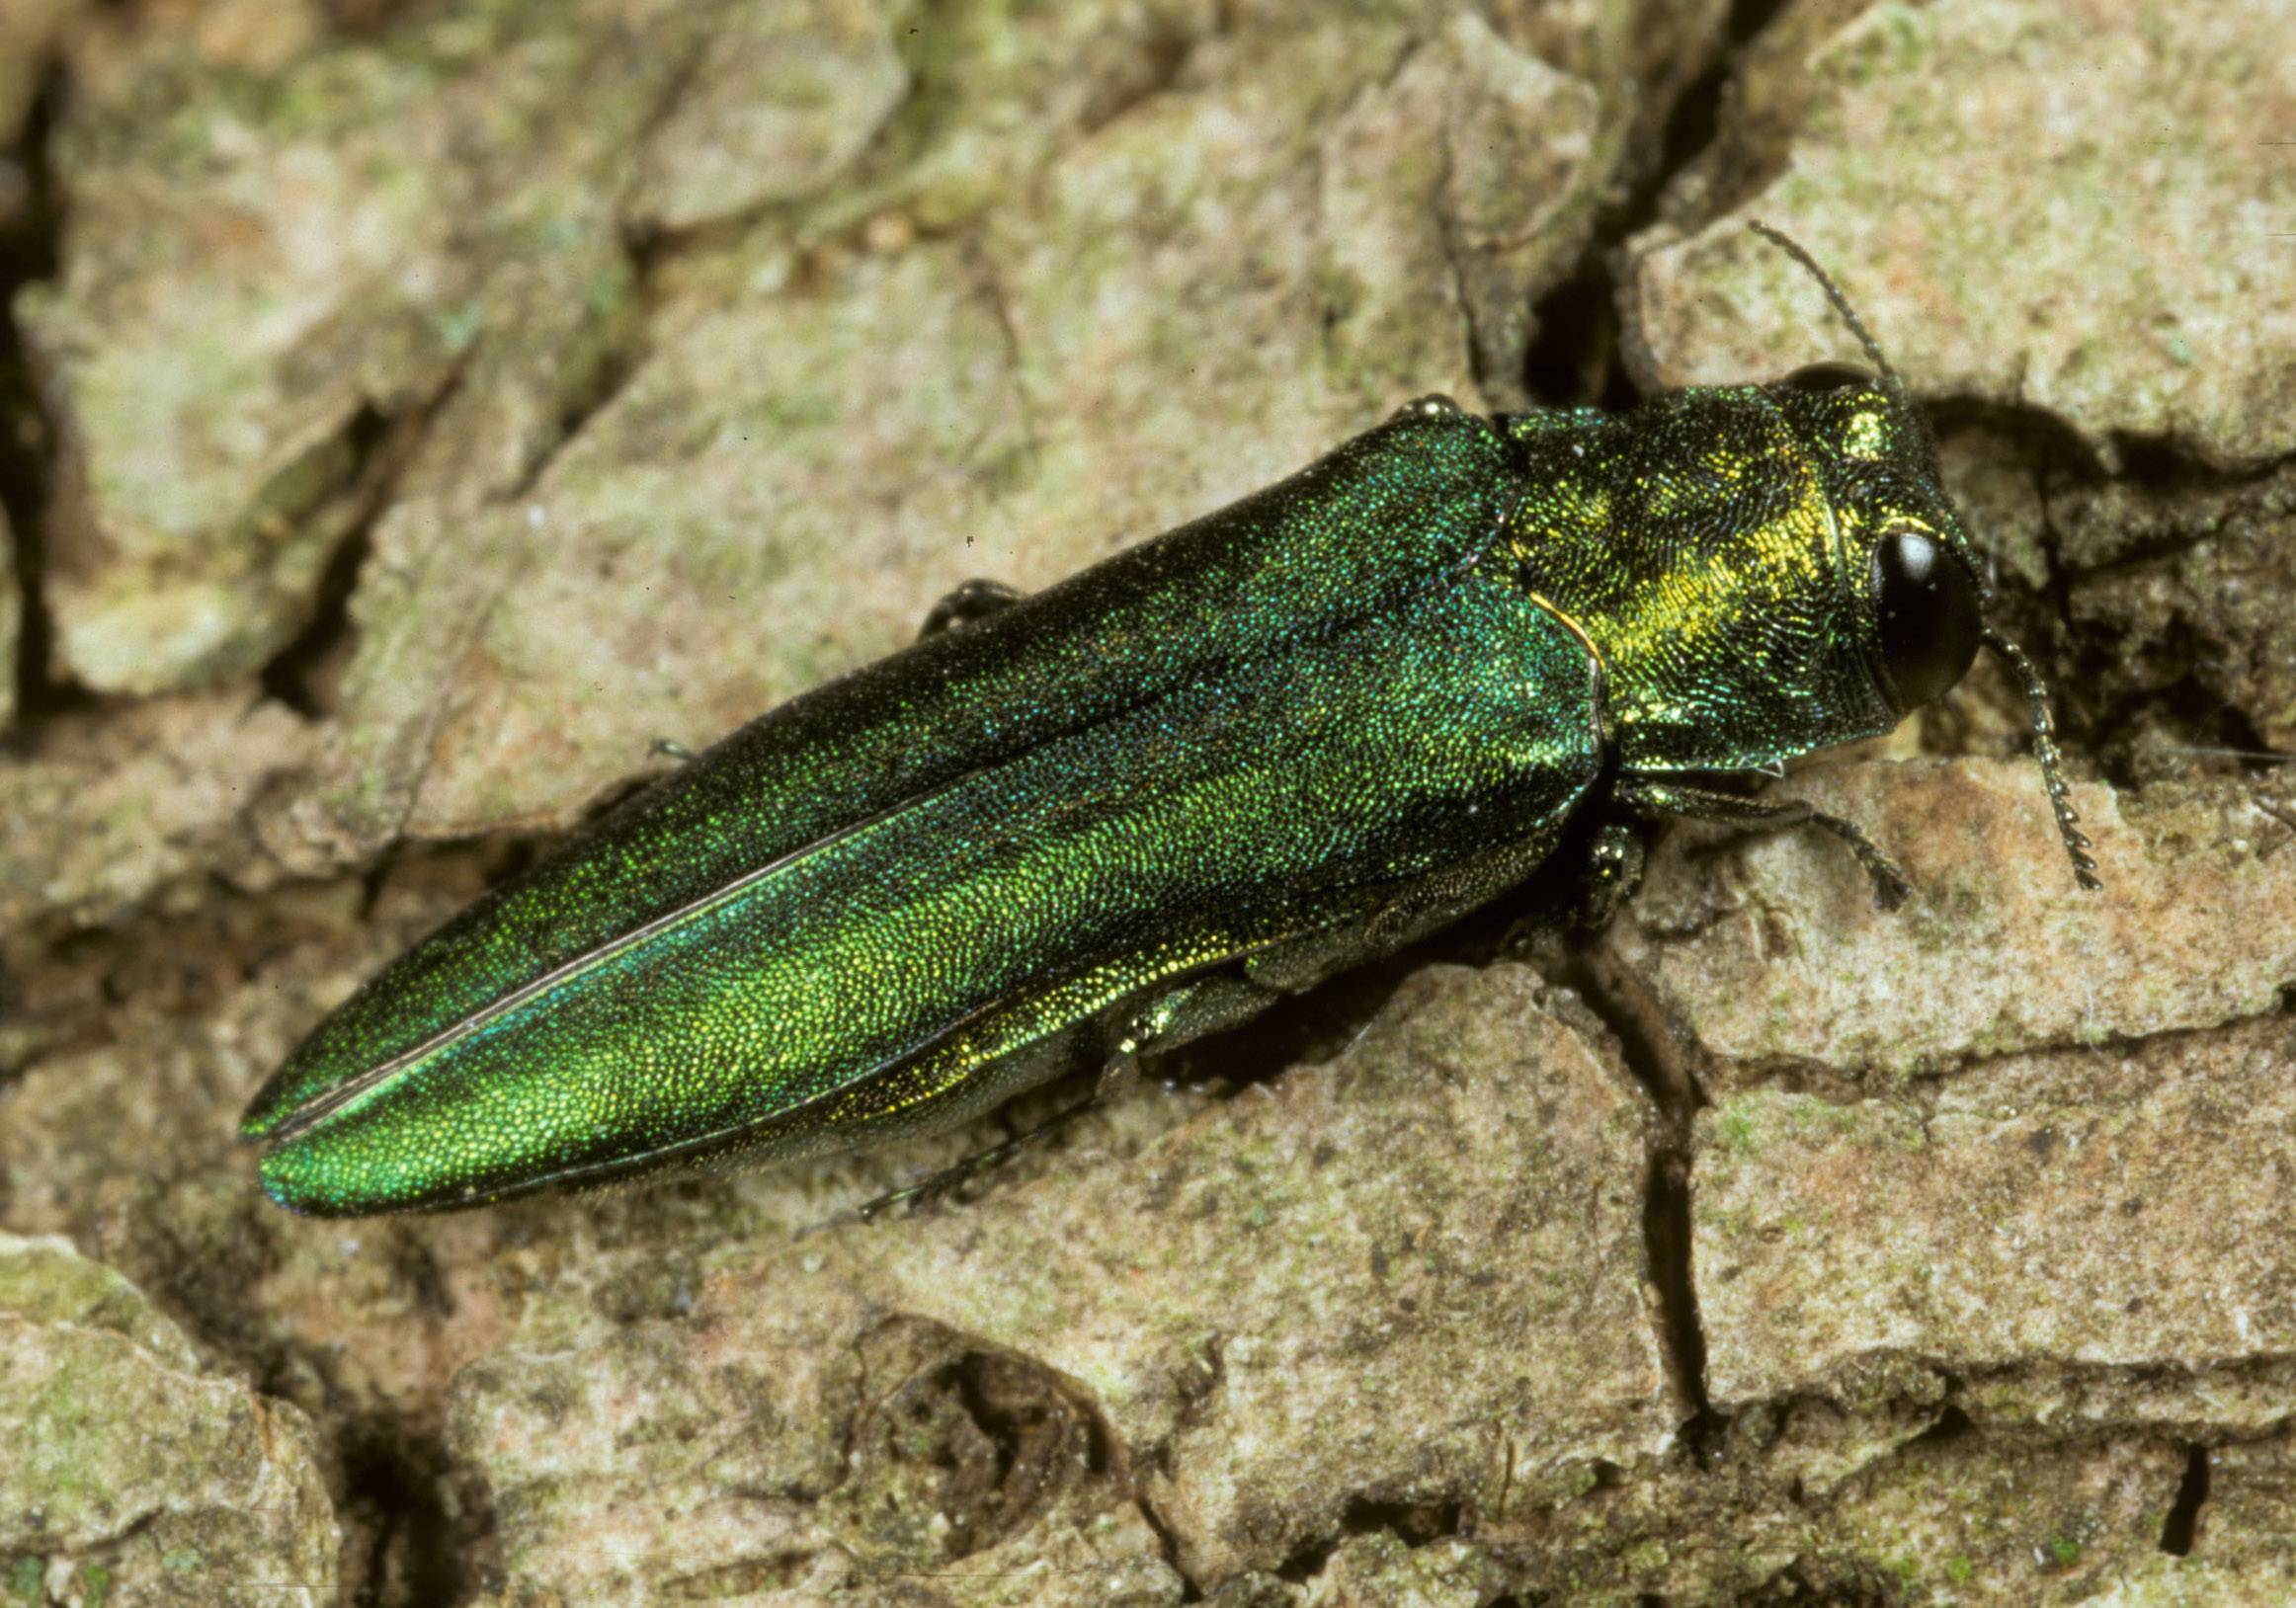 The emerald ash borer has been present in Kane County since at least 2006.